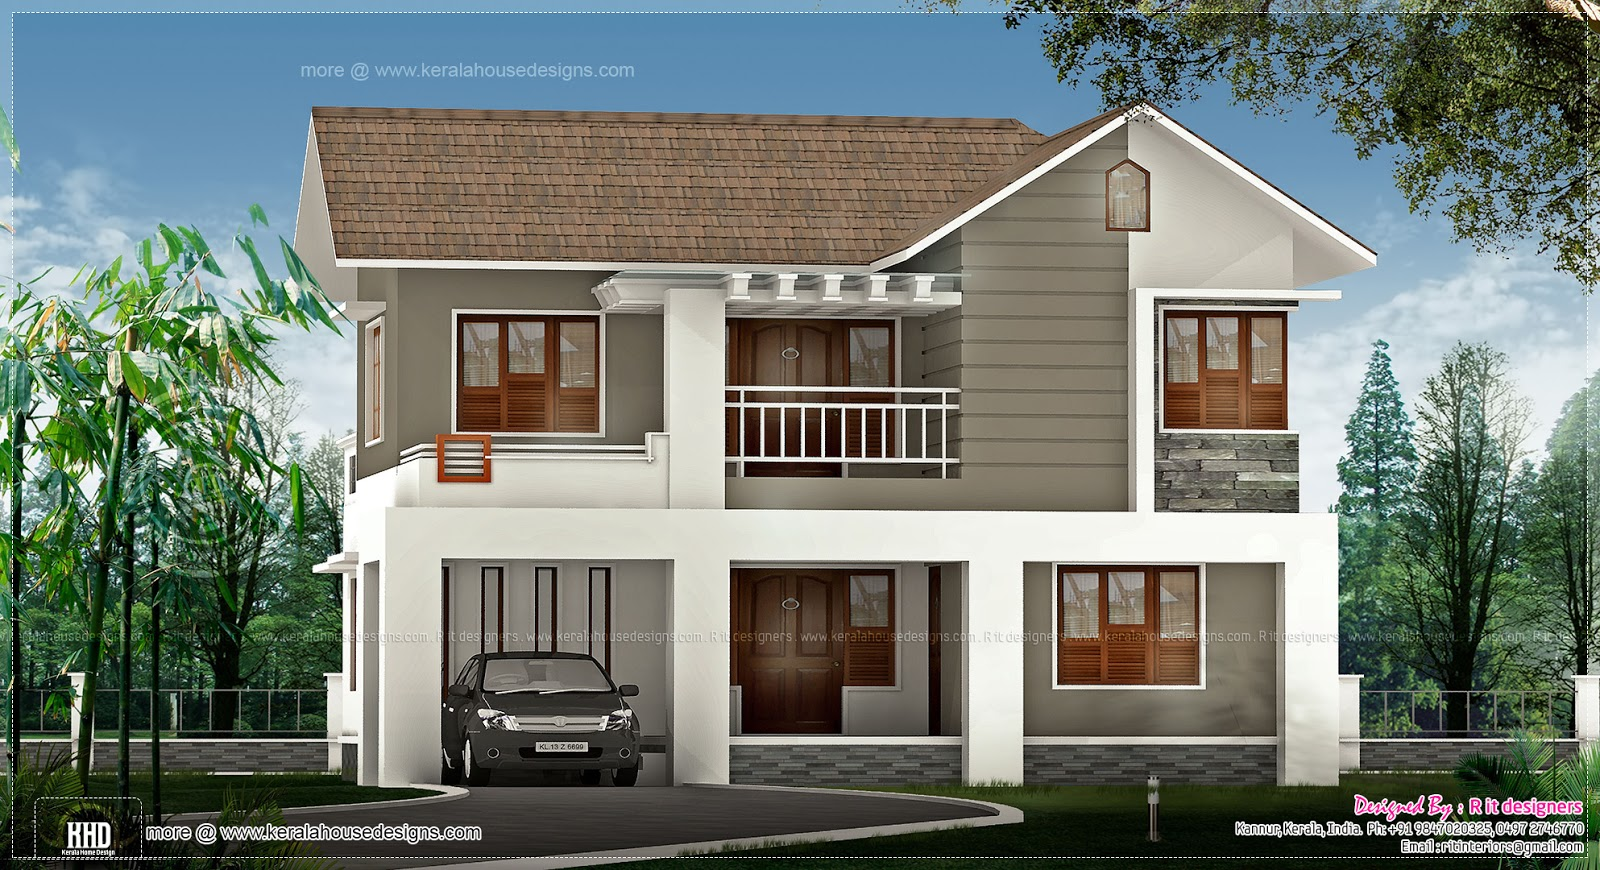 1829 sq ft home design in kannur kerala kerala home for Home plans and designs with photos